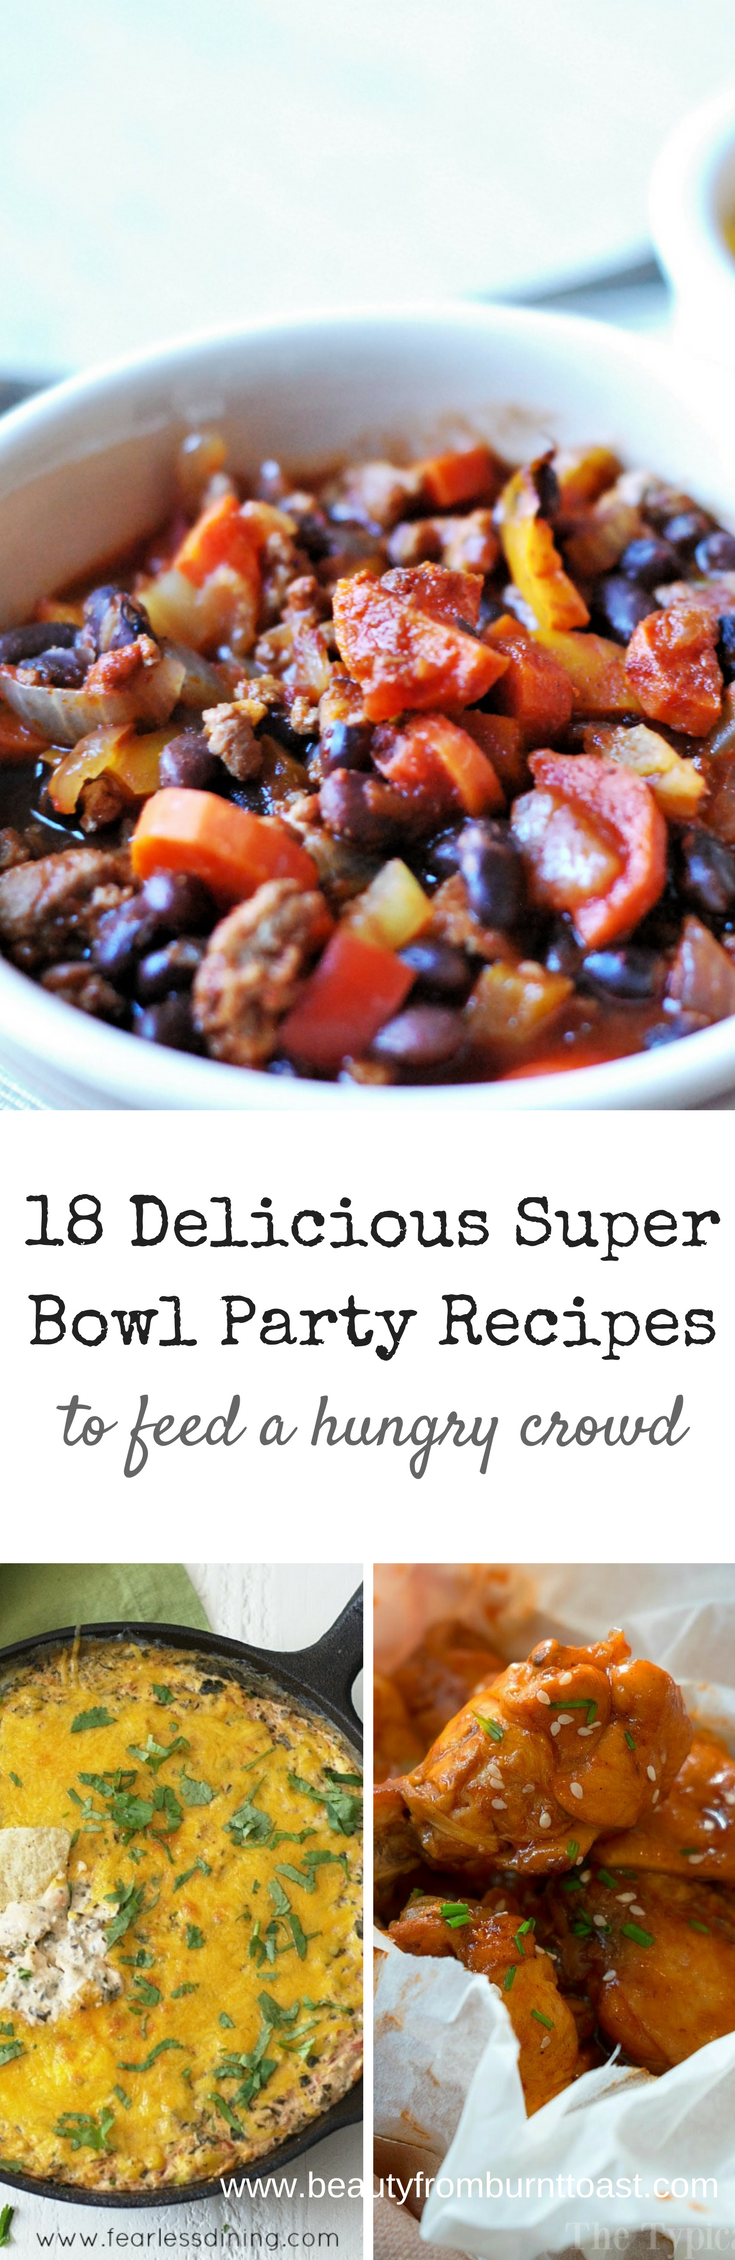 Hosting a Super Bowl Party or Attending a Pot Luck? Either way, we've got you covered. These 18 recipes are crowd-pleasing and sure to make your superfan friends happy, even if their team ends up on the losing side. #superbowl #partyfood #appetizers #recipes